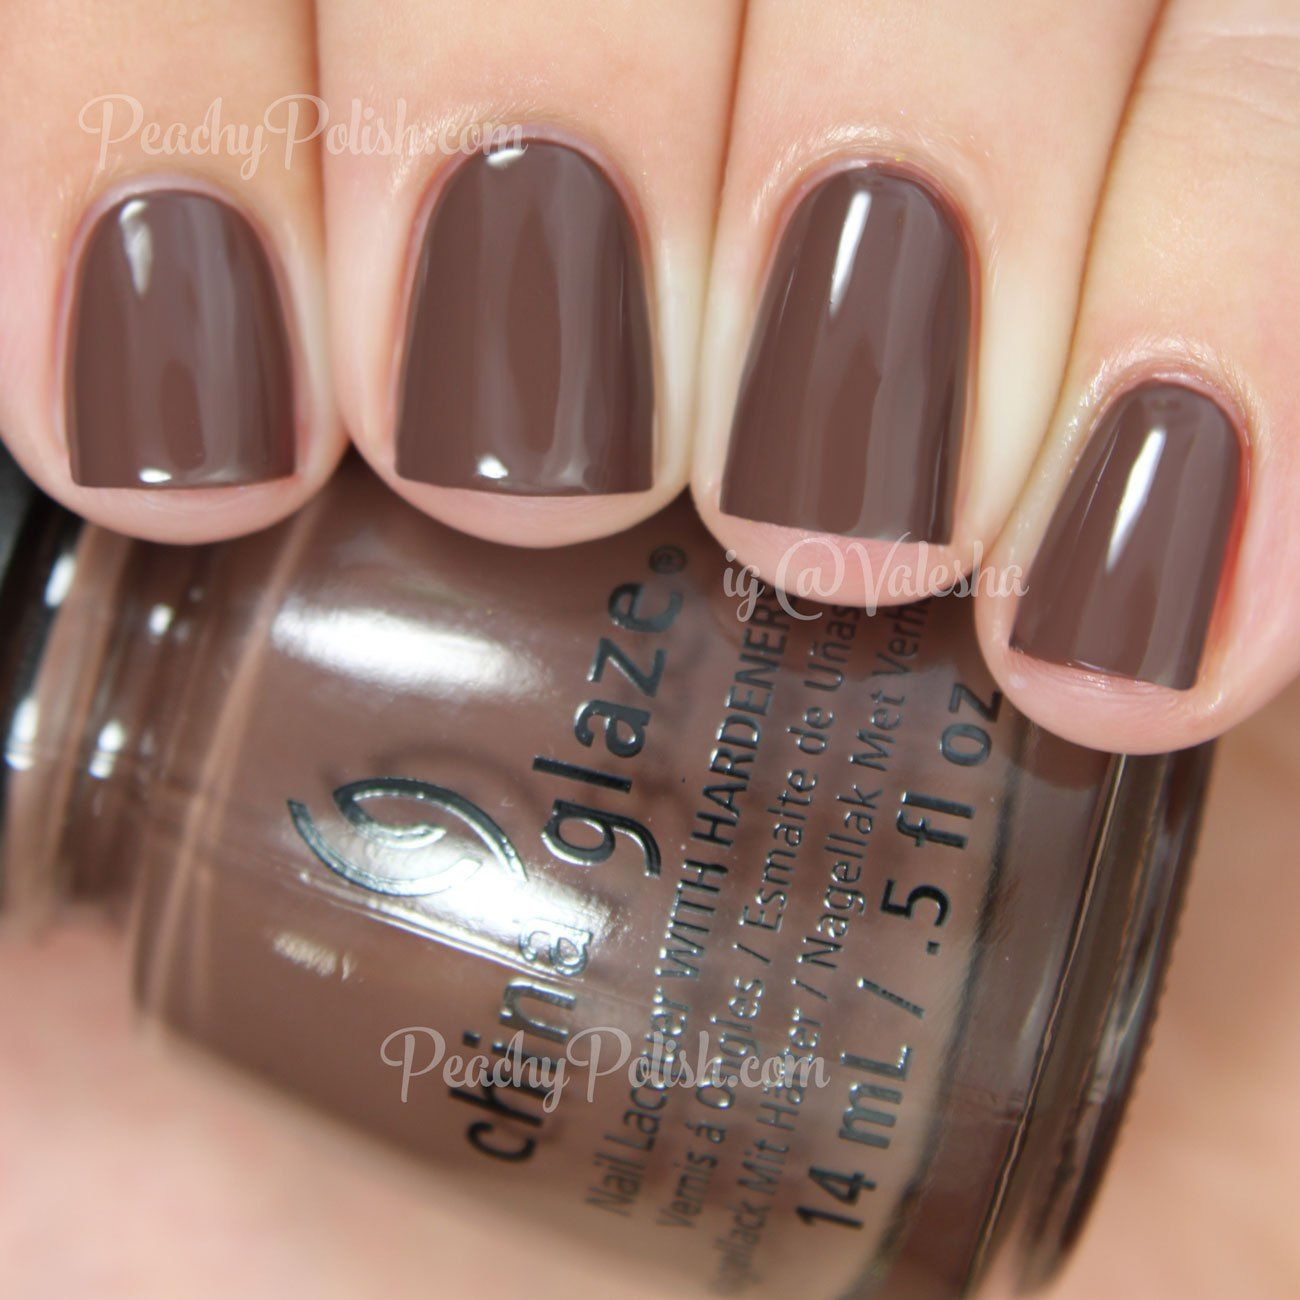 China Glaze Community   The Giver Collection   Peachy Polish